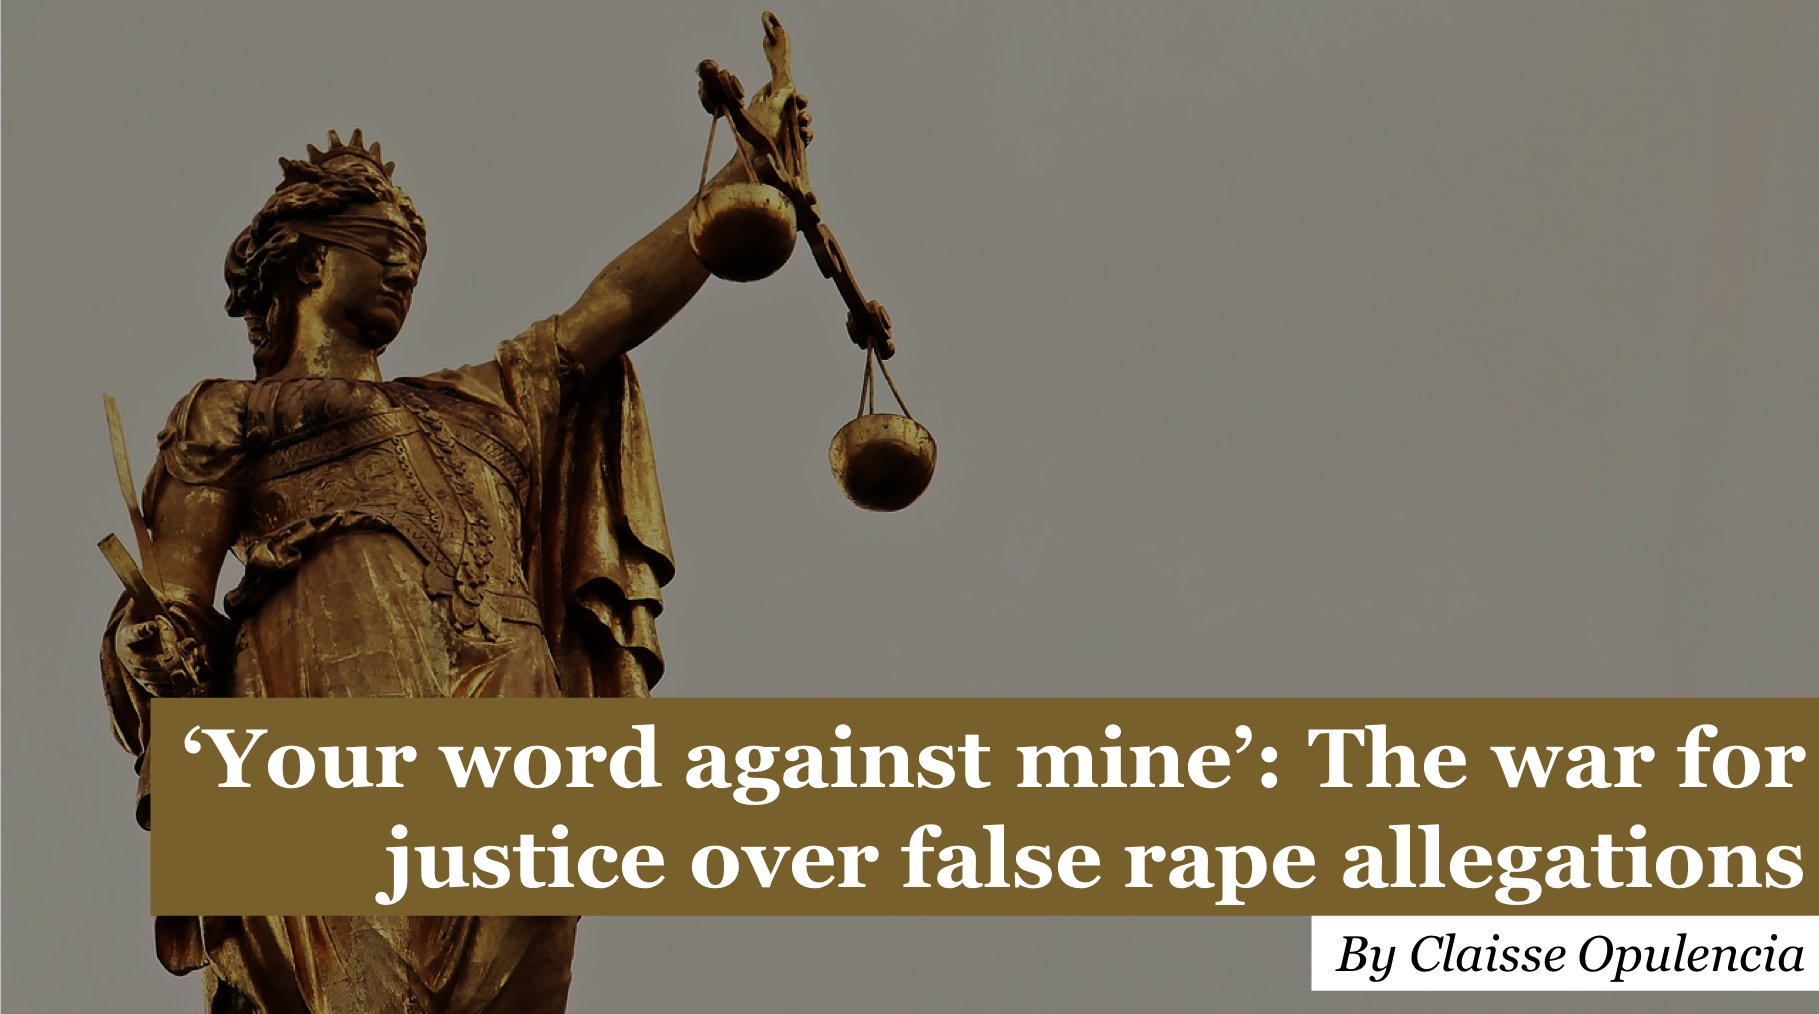 'Your word against mine': The war for justice over rape allegations - The Canterbury Hub